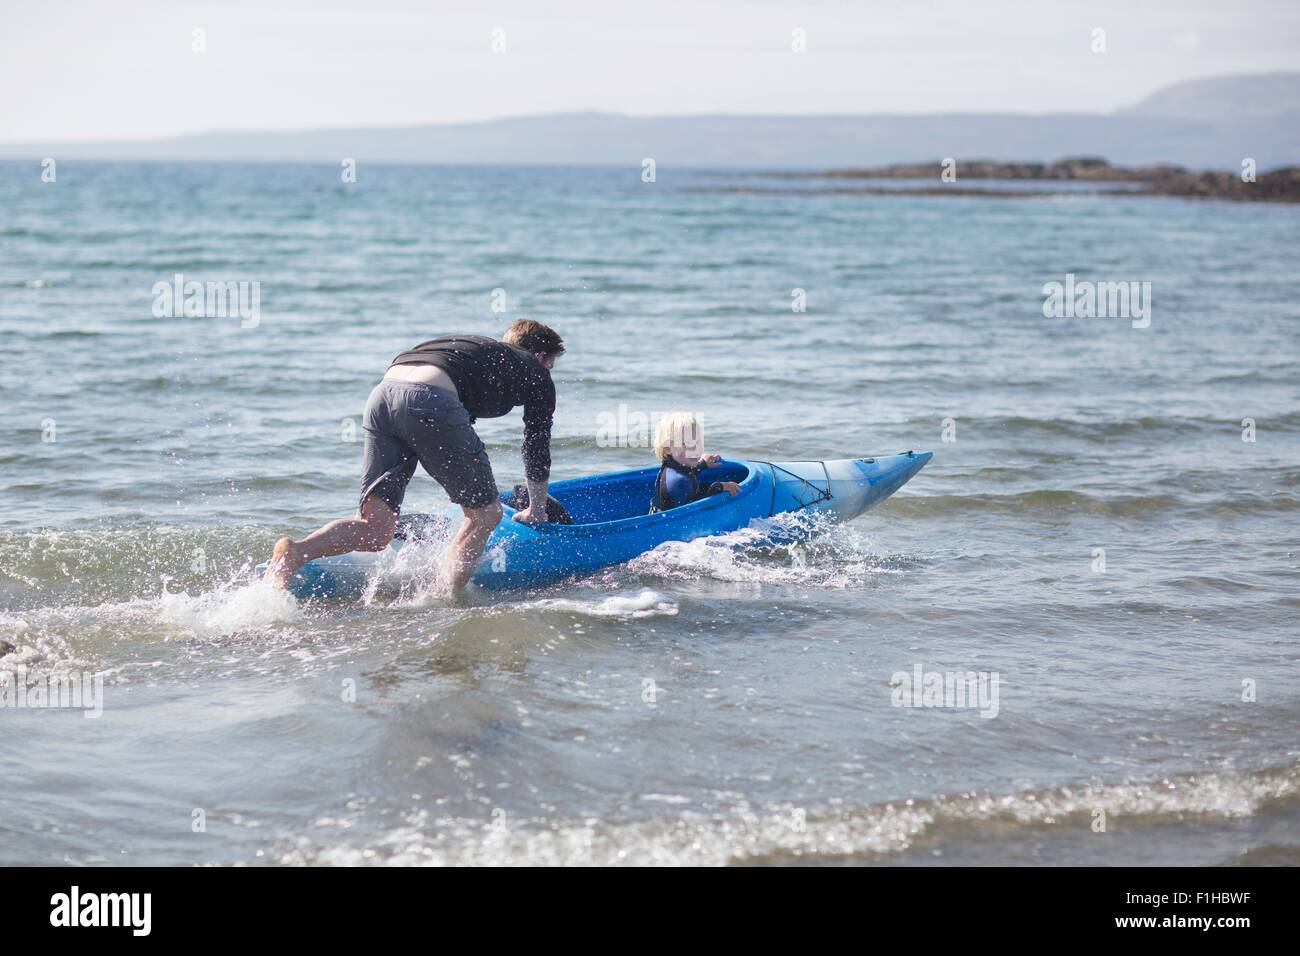 Father pushing son in water in canoe - Stock Image